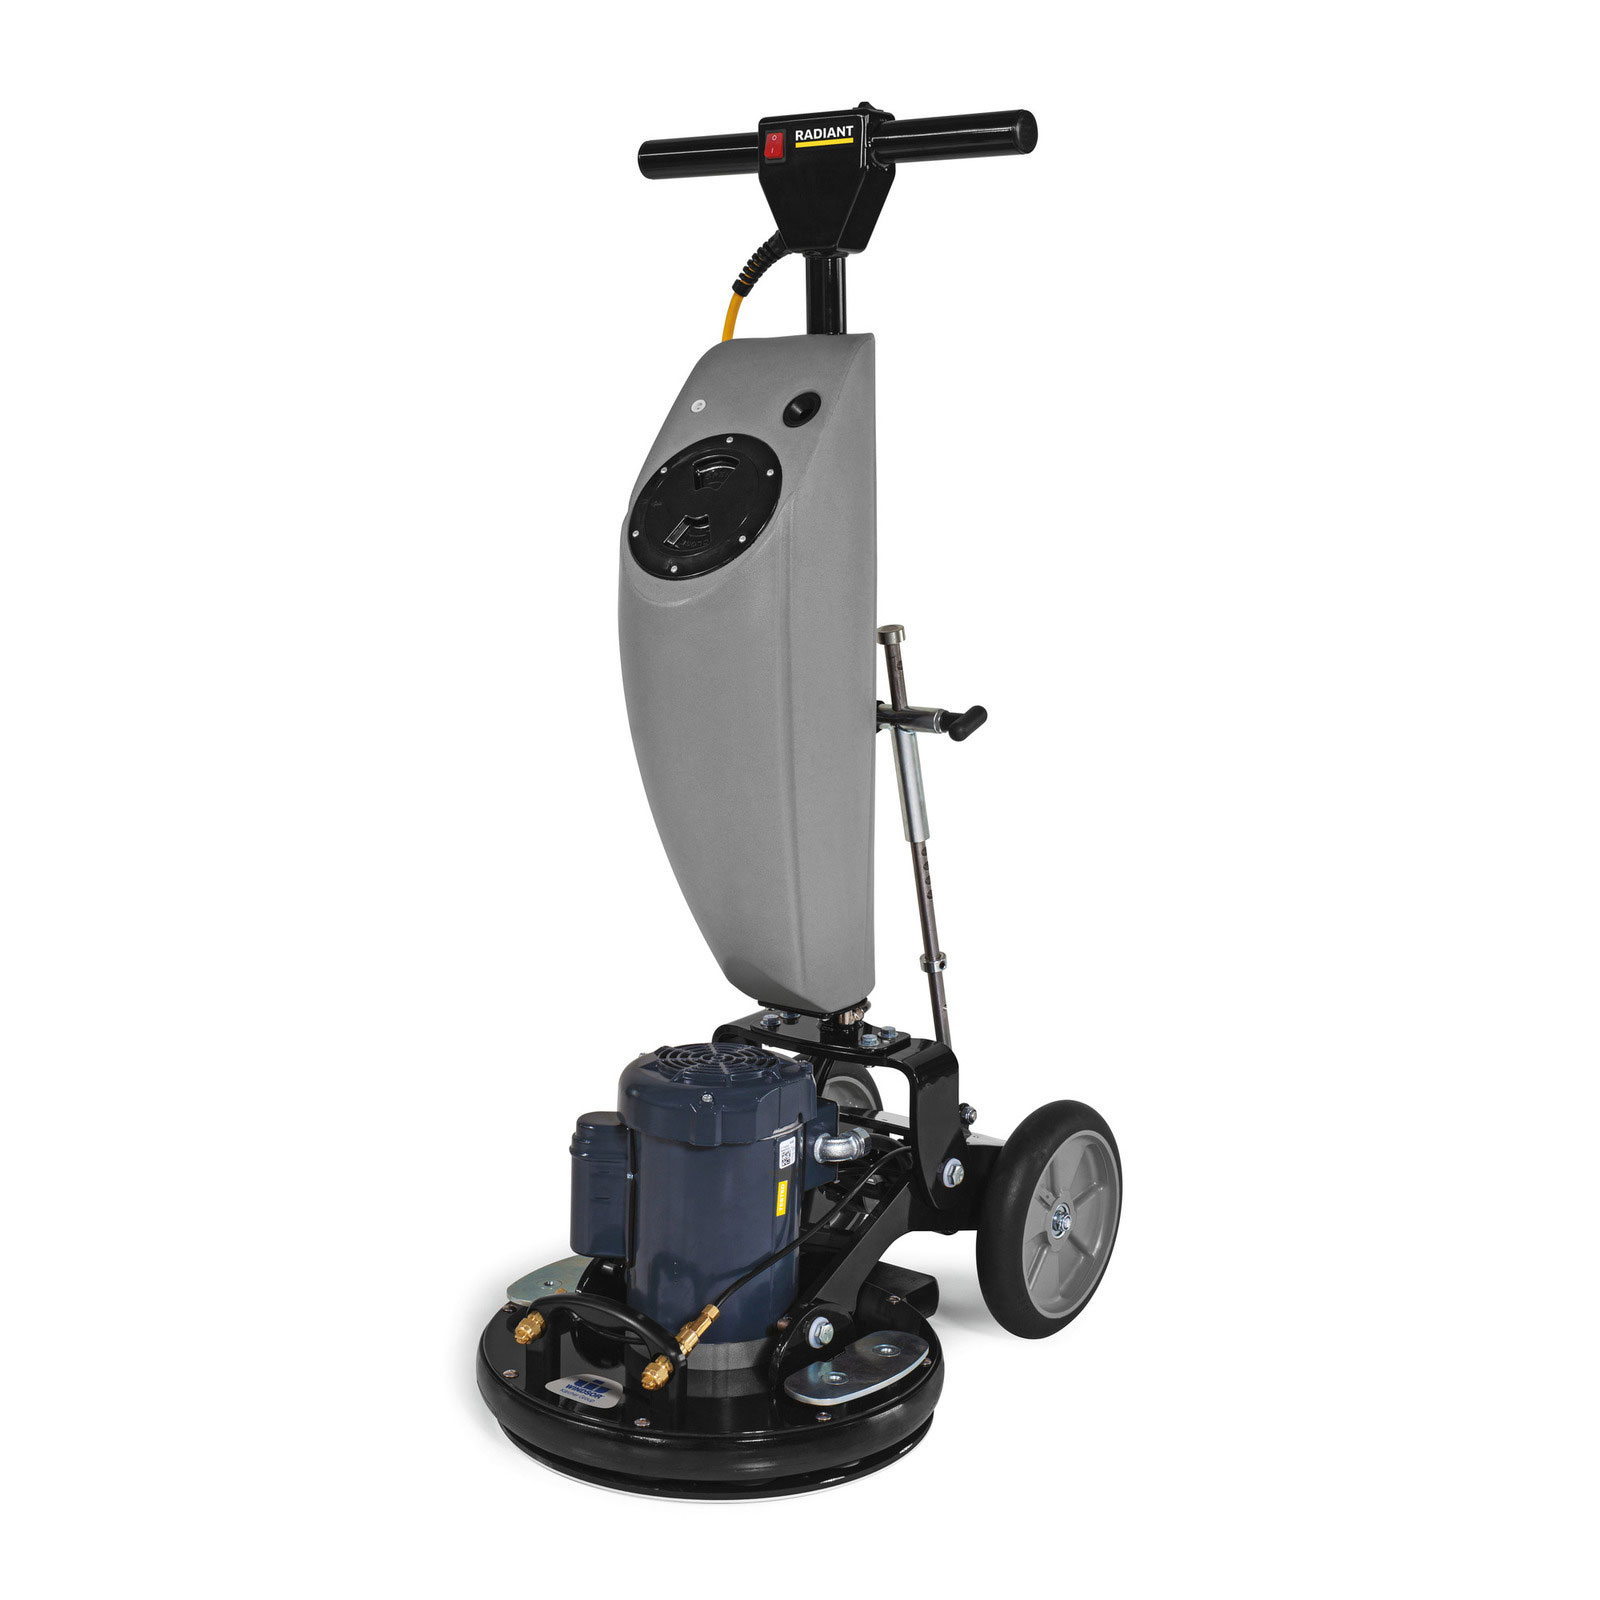 Windsor 1.005-297.0 Radiant Orbital Scrubber 17 Inch Floor Machine with ORB Technology FREE Shipping No Weight Set